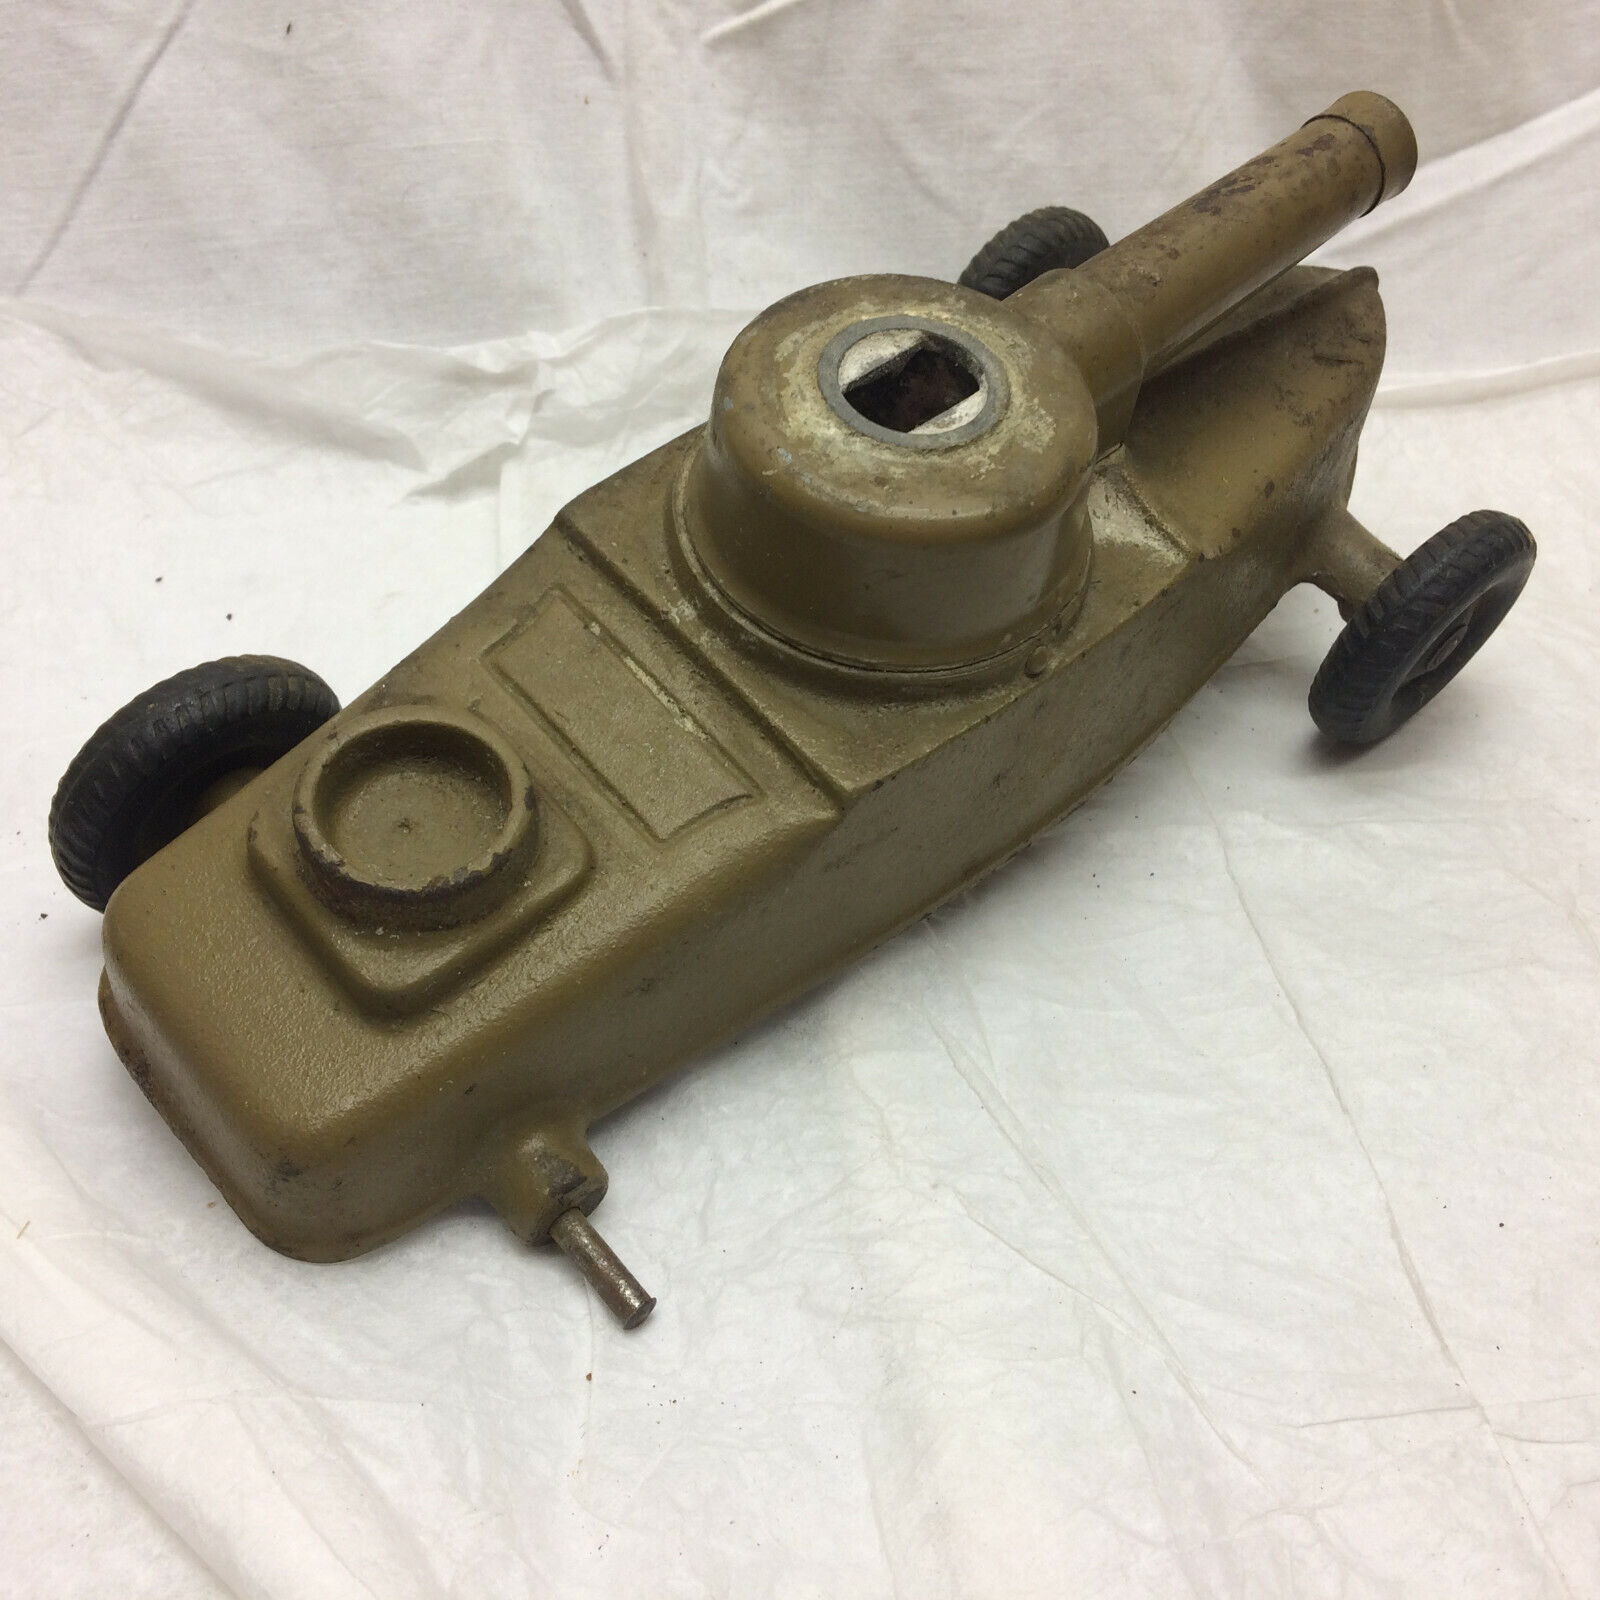 Vintage Toy Antique Cast Metal Army Tank WWI Style